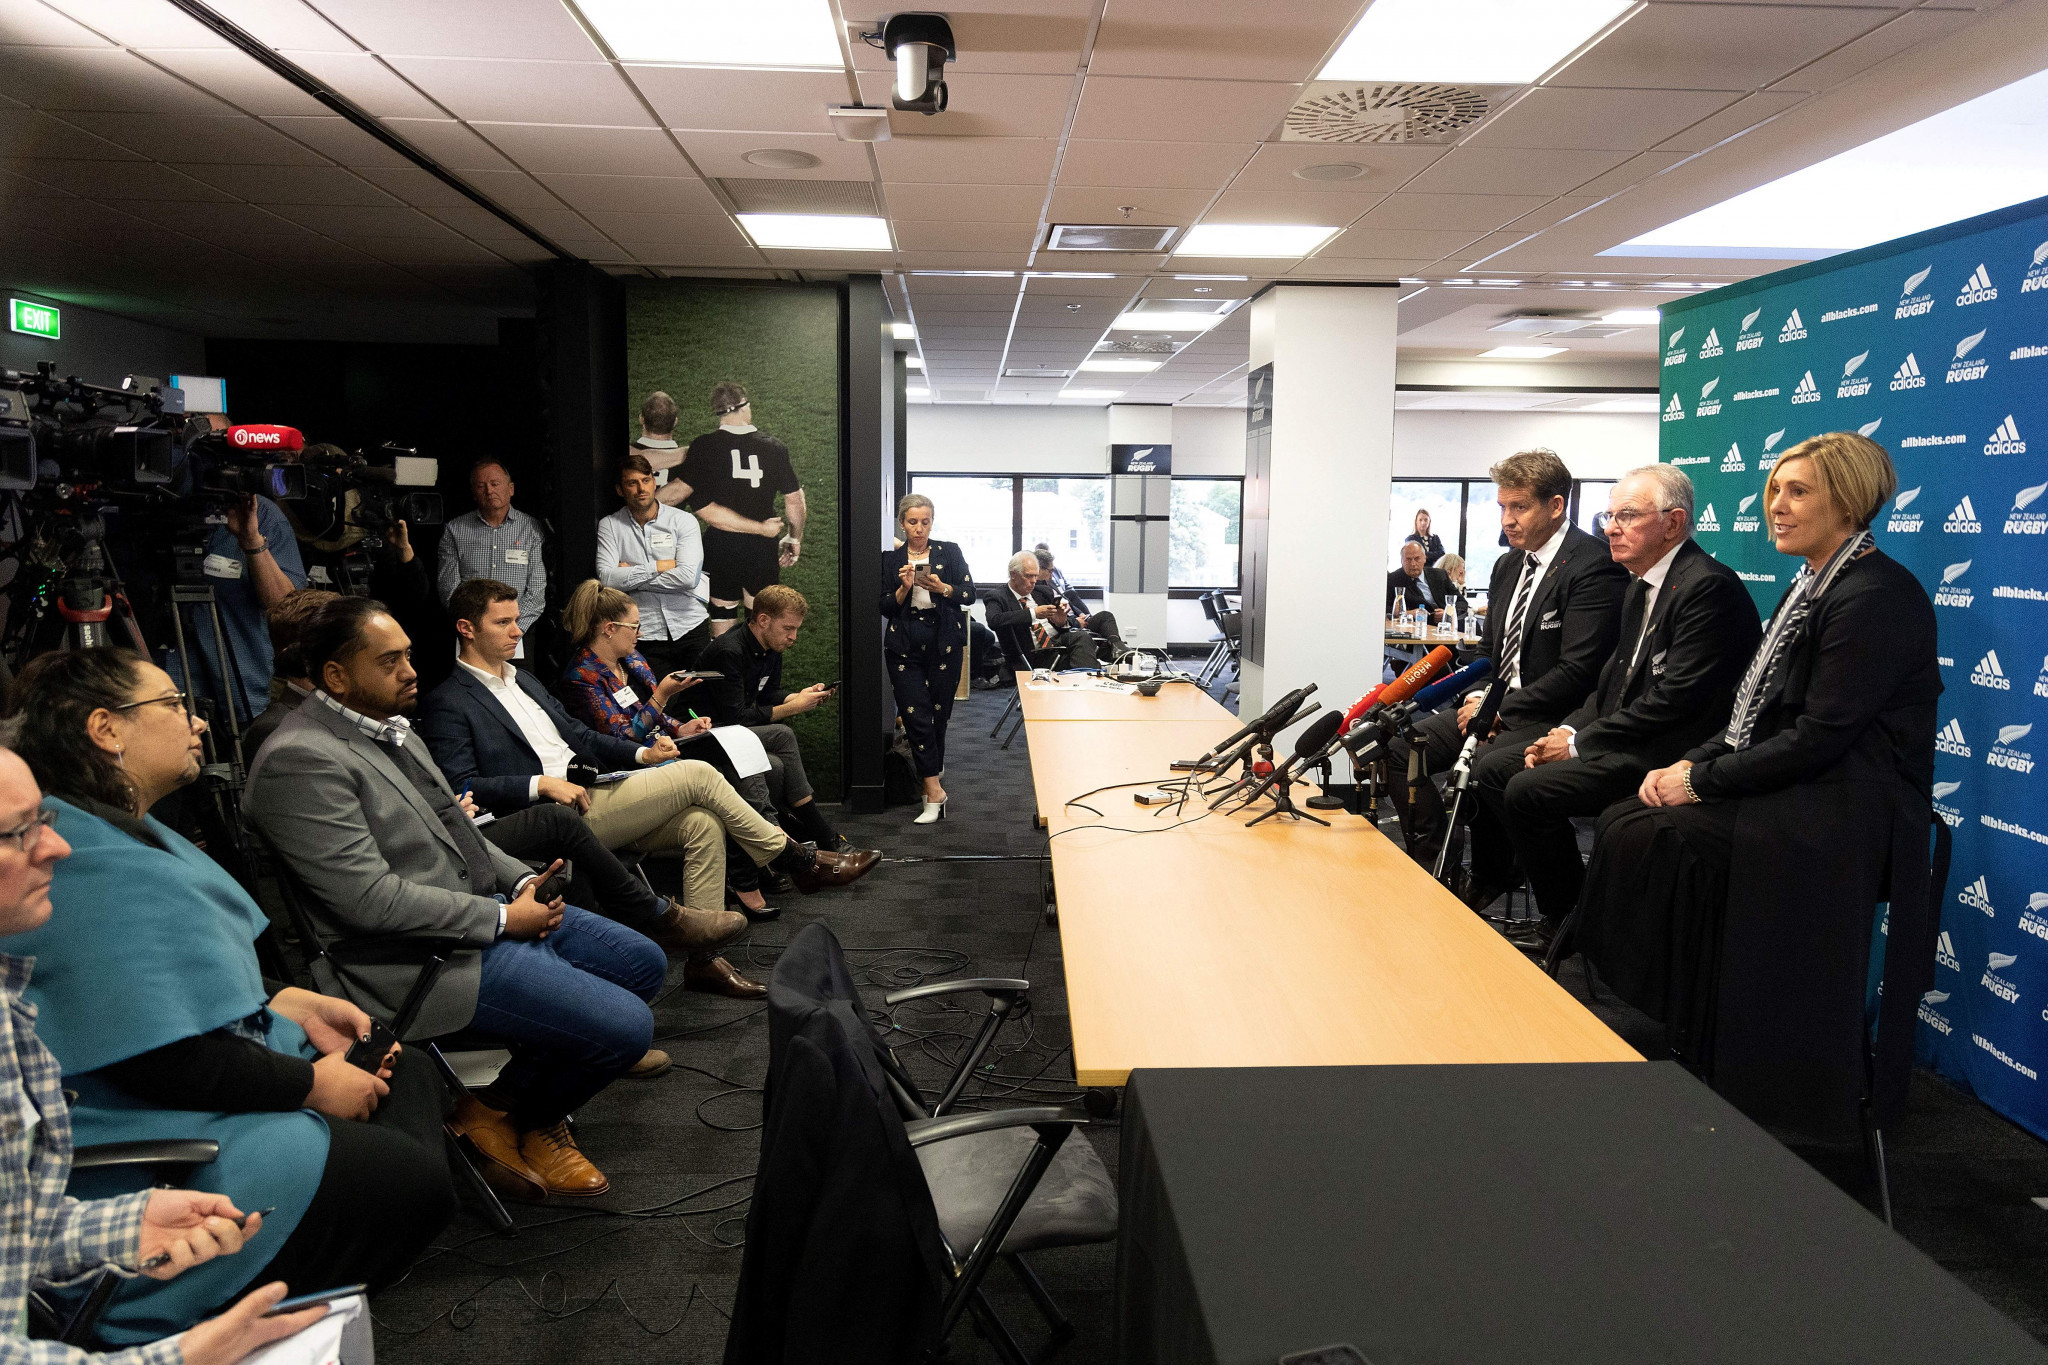 New Zealand Rugby announce loss and approves private equity investment